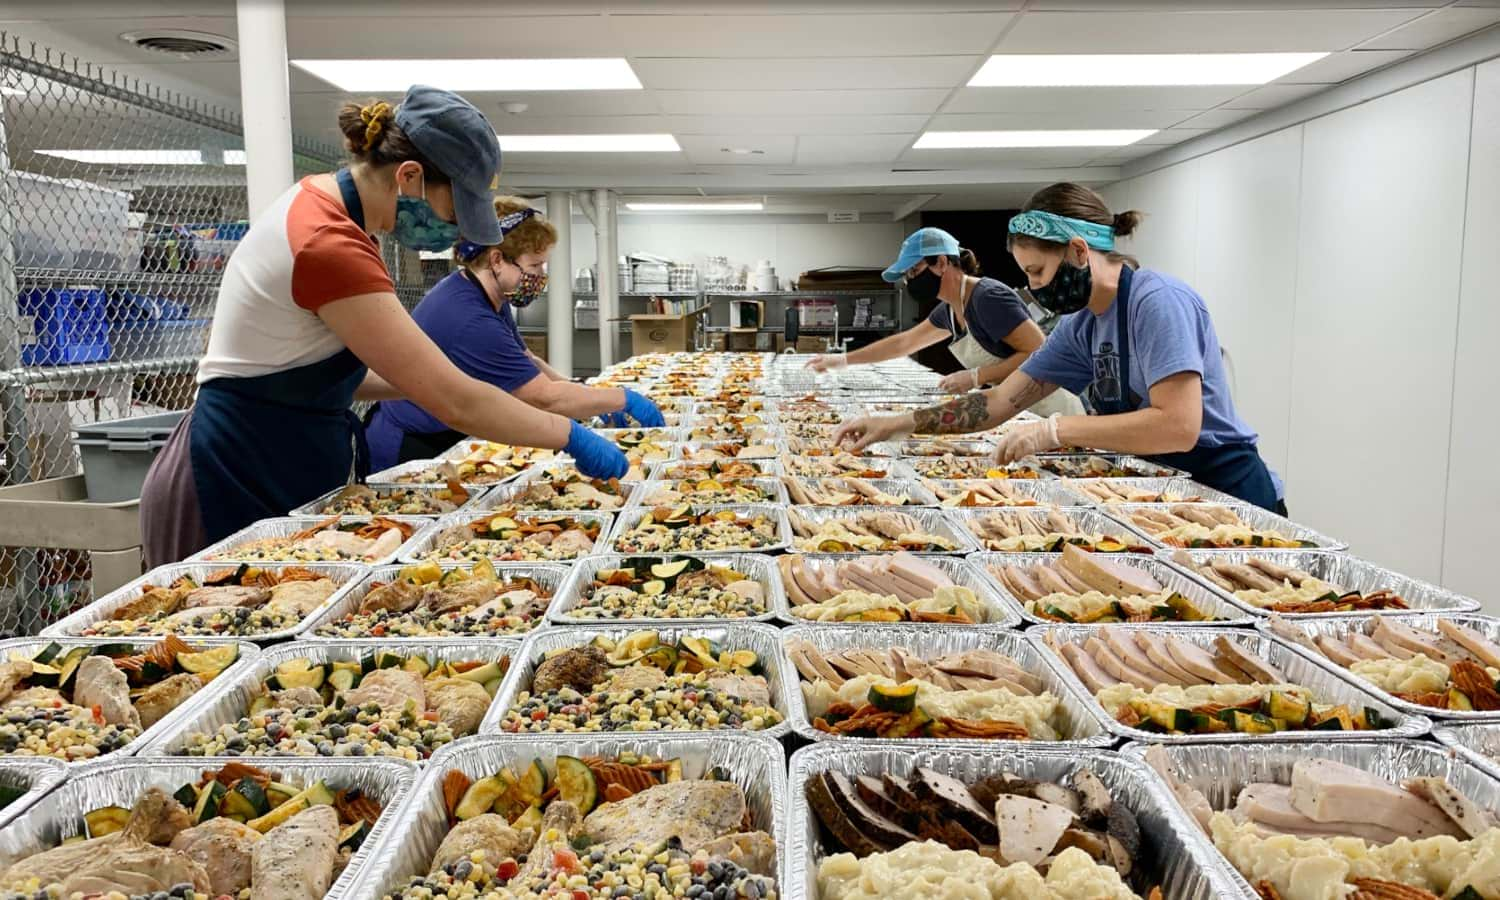 """Cincinnati organization La Soupe is fighting hunger and food waste through their mission to """"Rescue Transform Share"""" by sharing meals with those in need."""